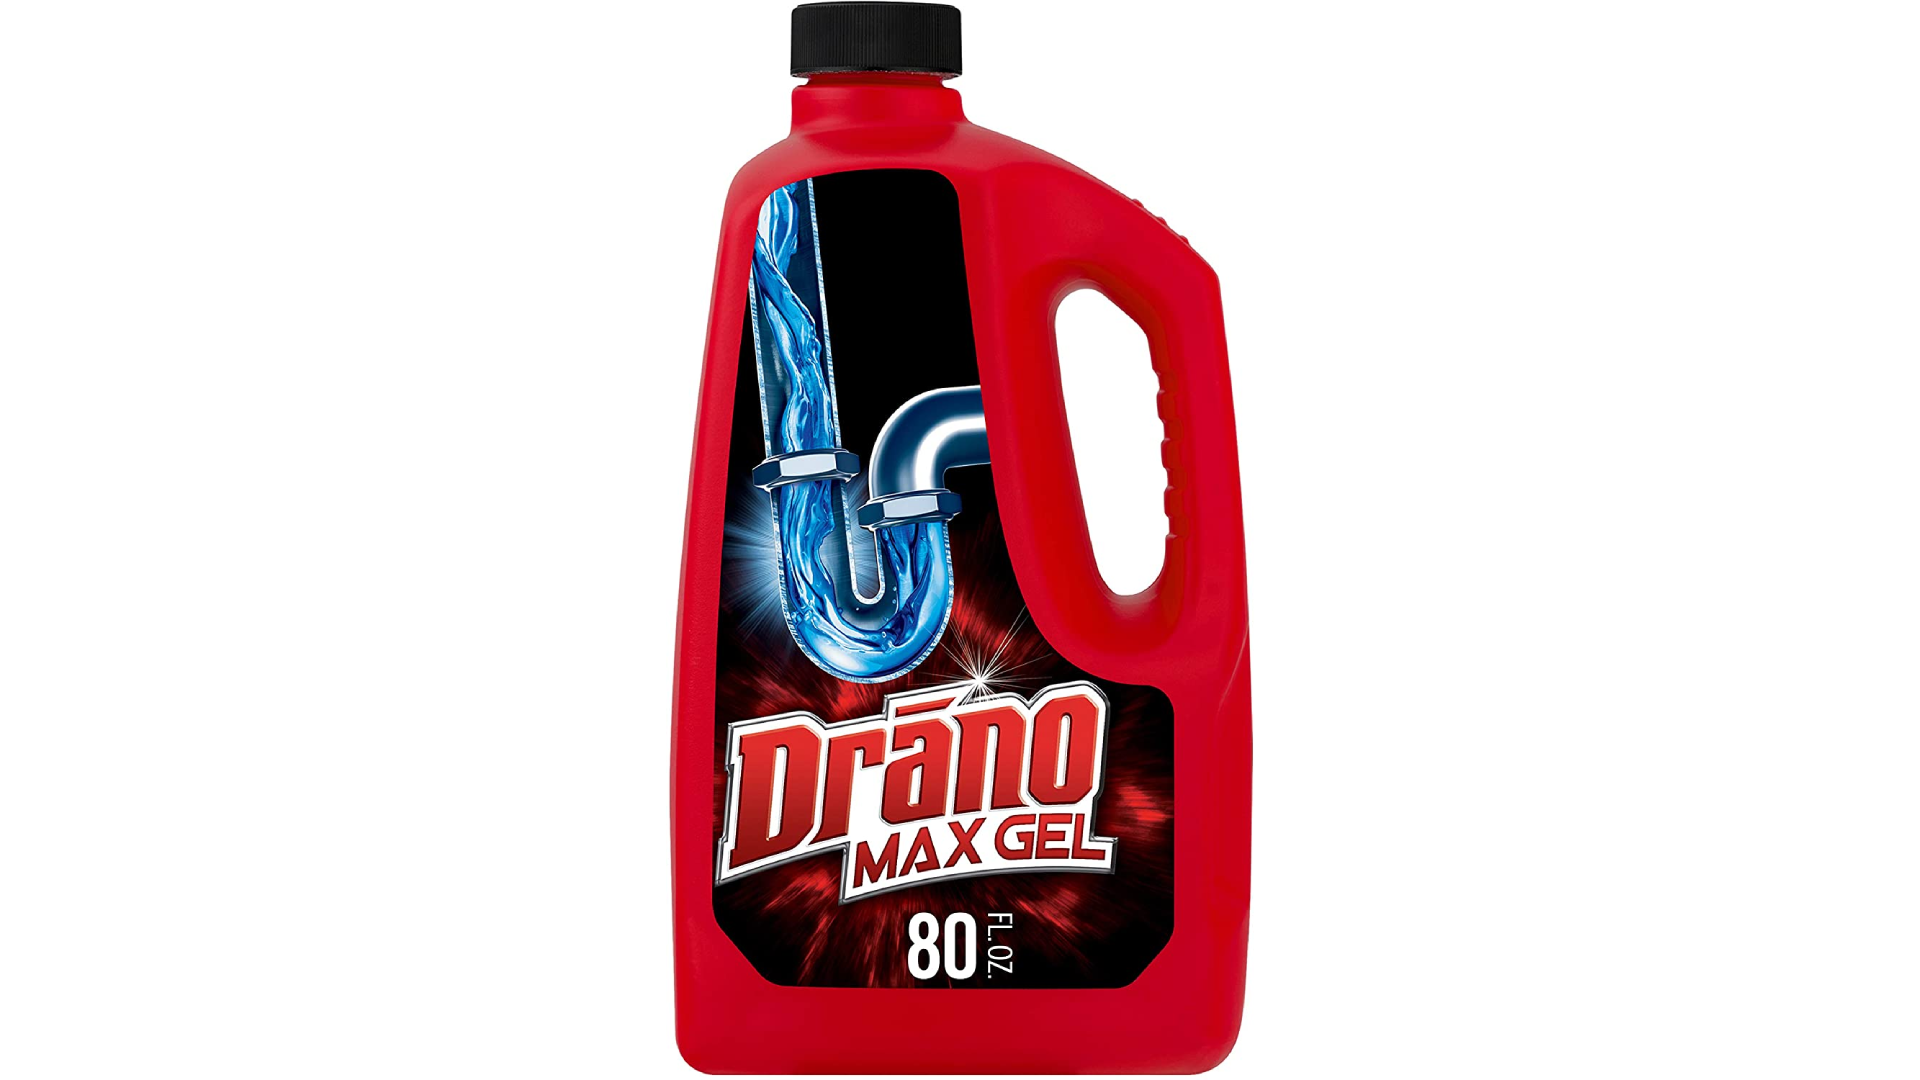 A red bottle of drain cleaner with a side handle.